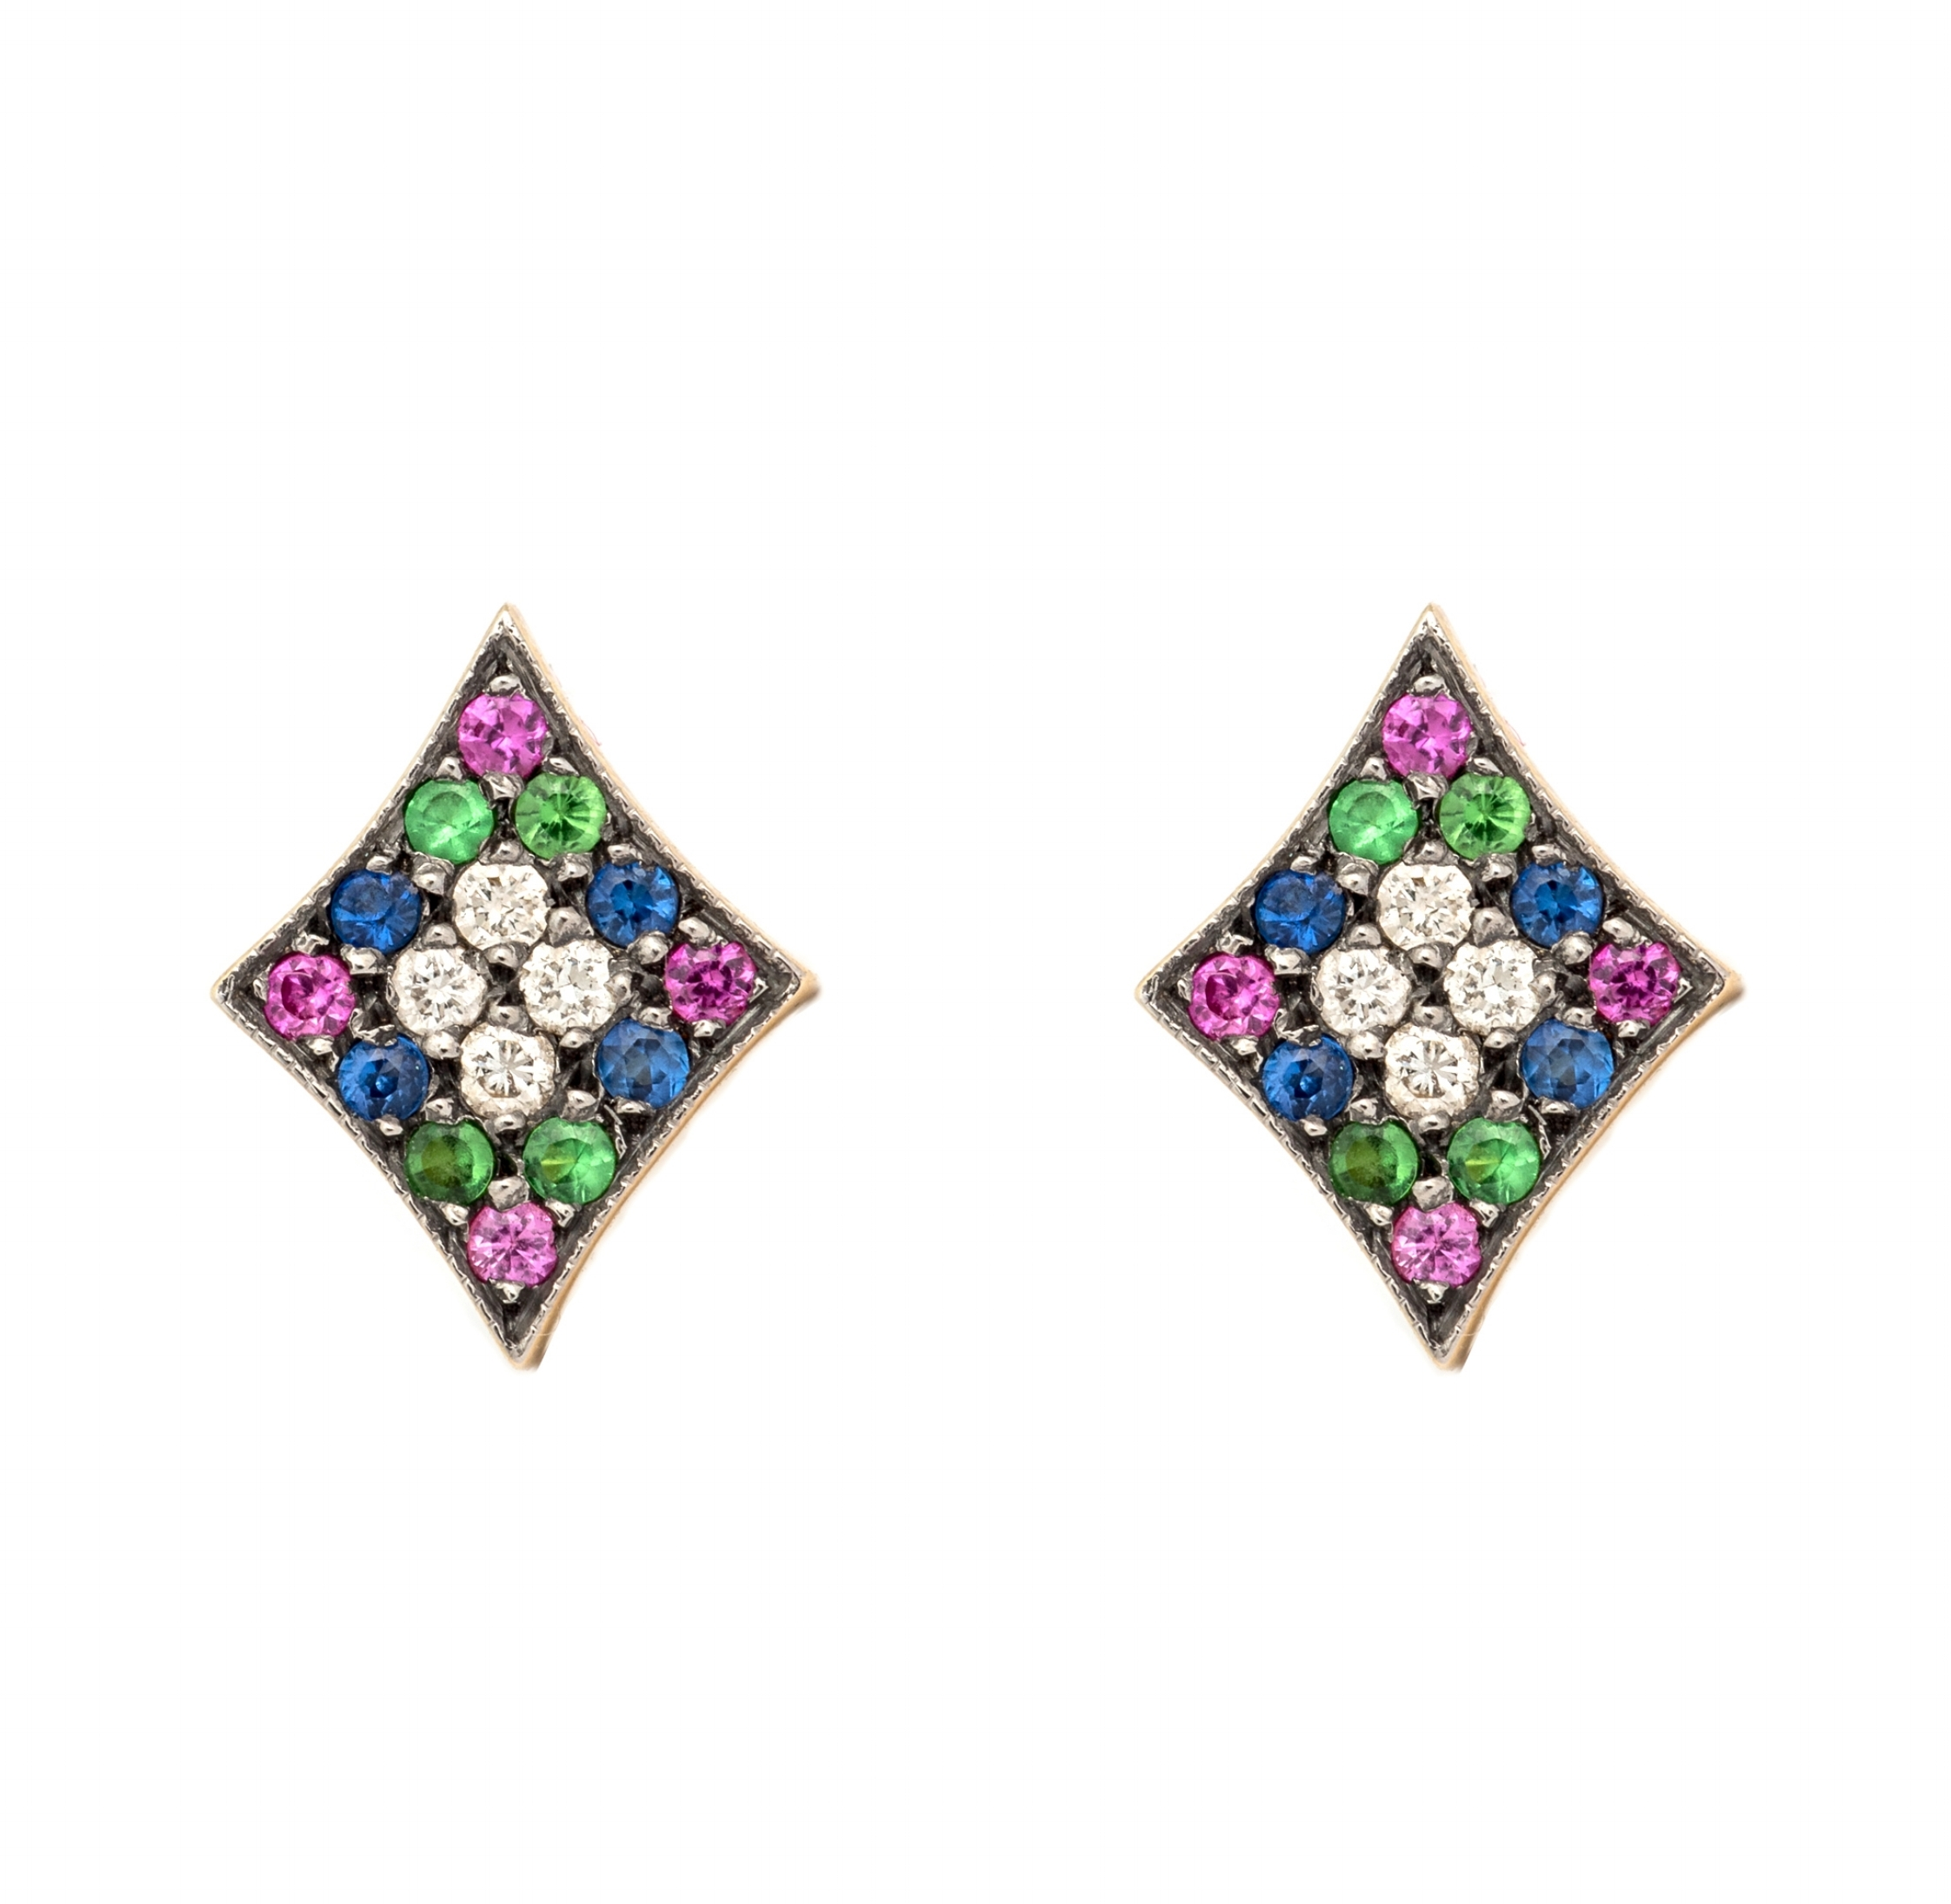 Rhombi Rainbow Earrings